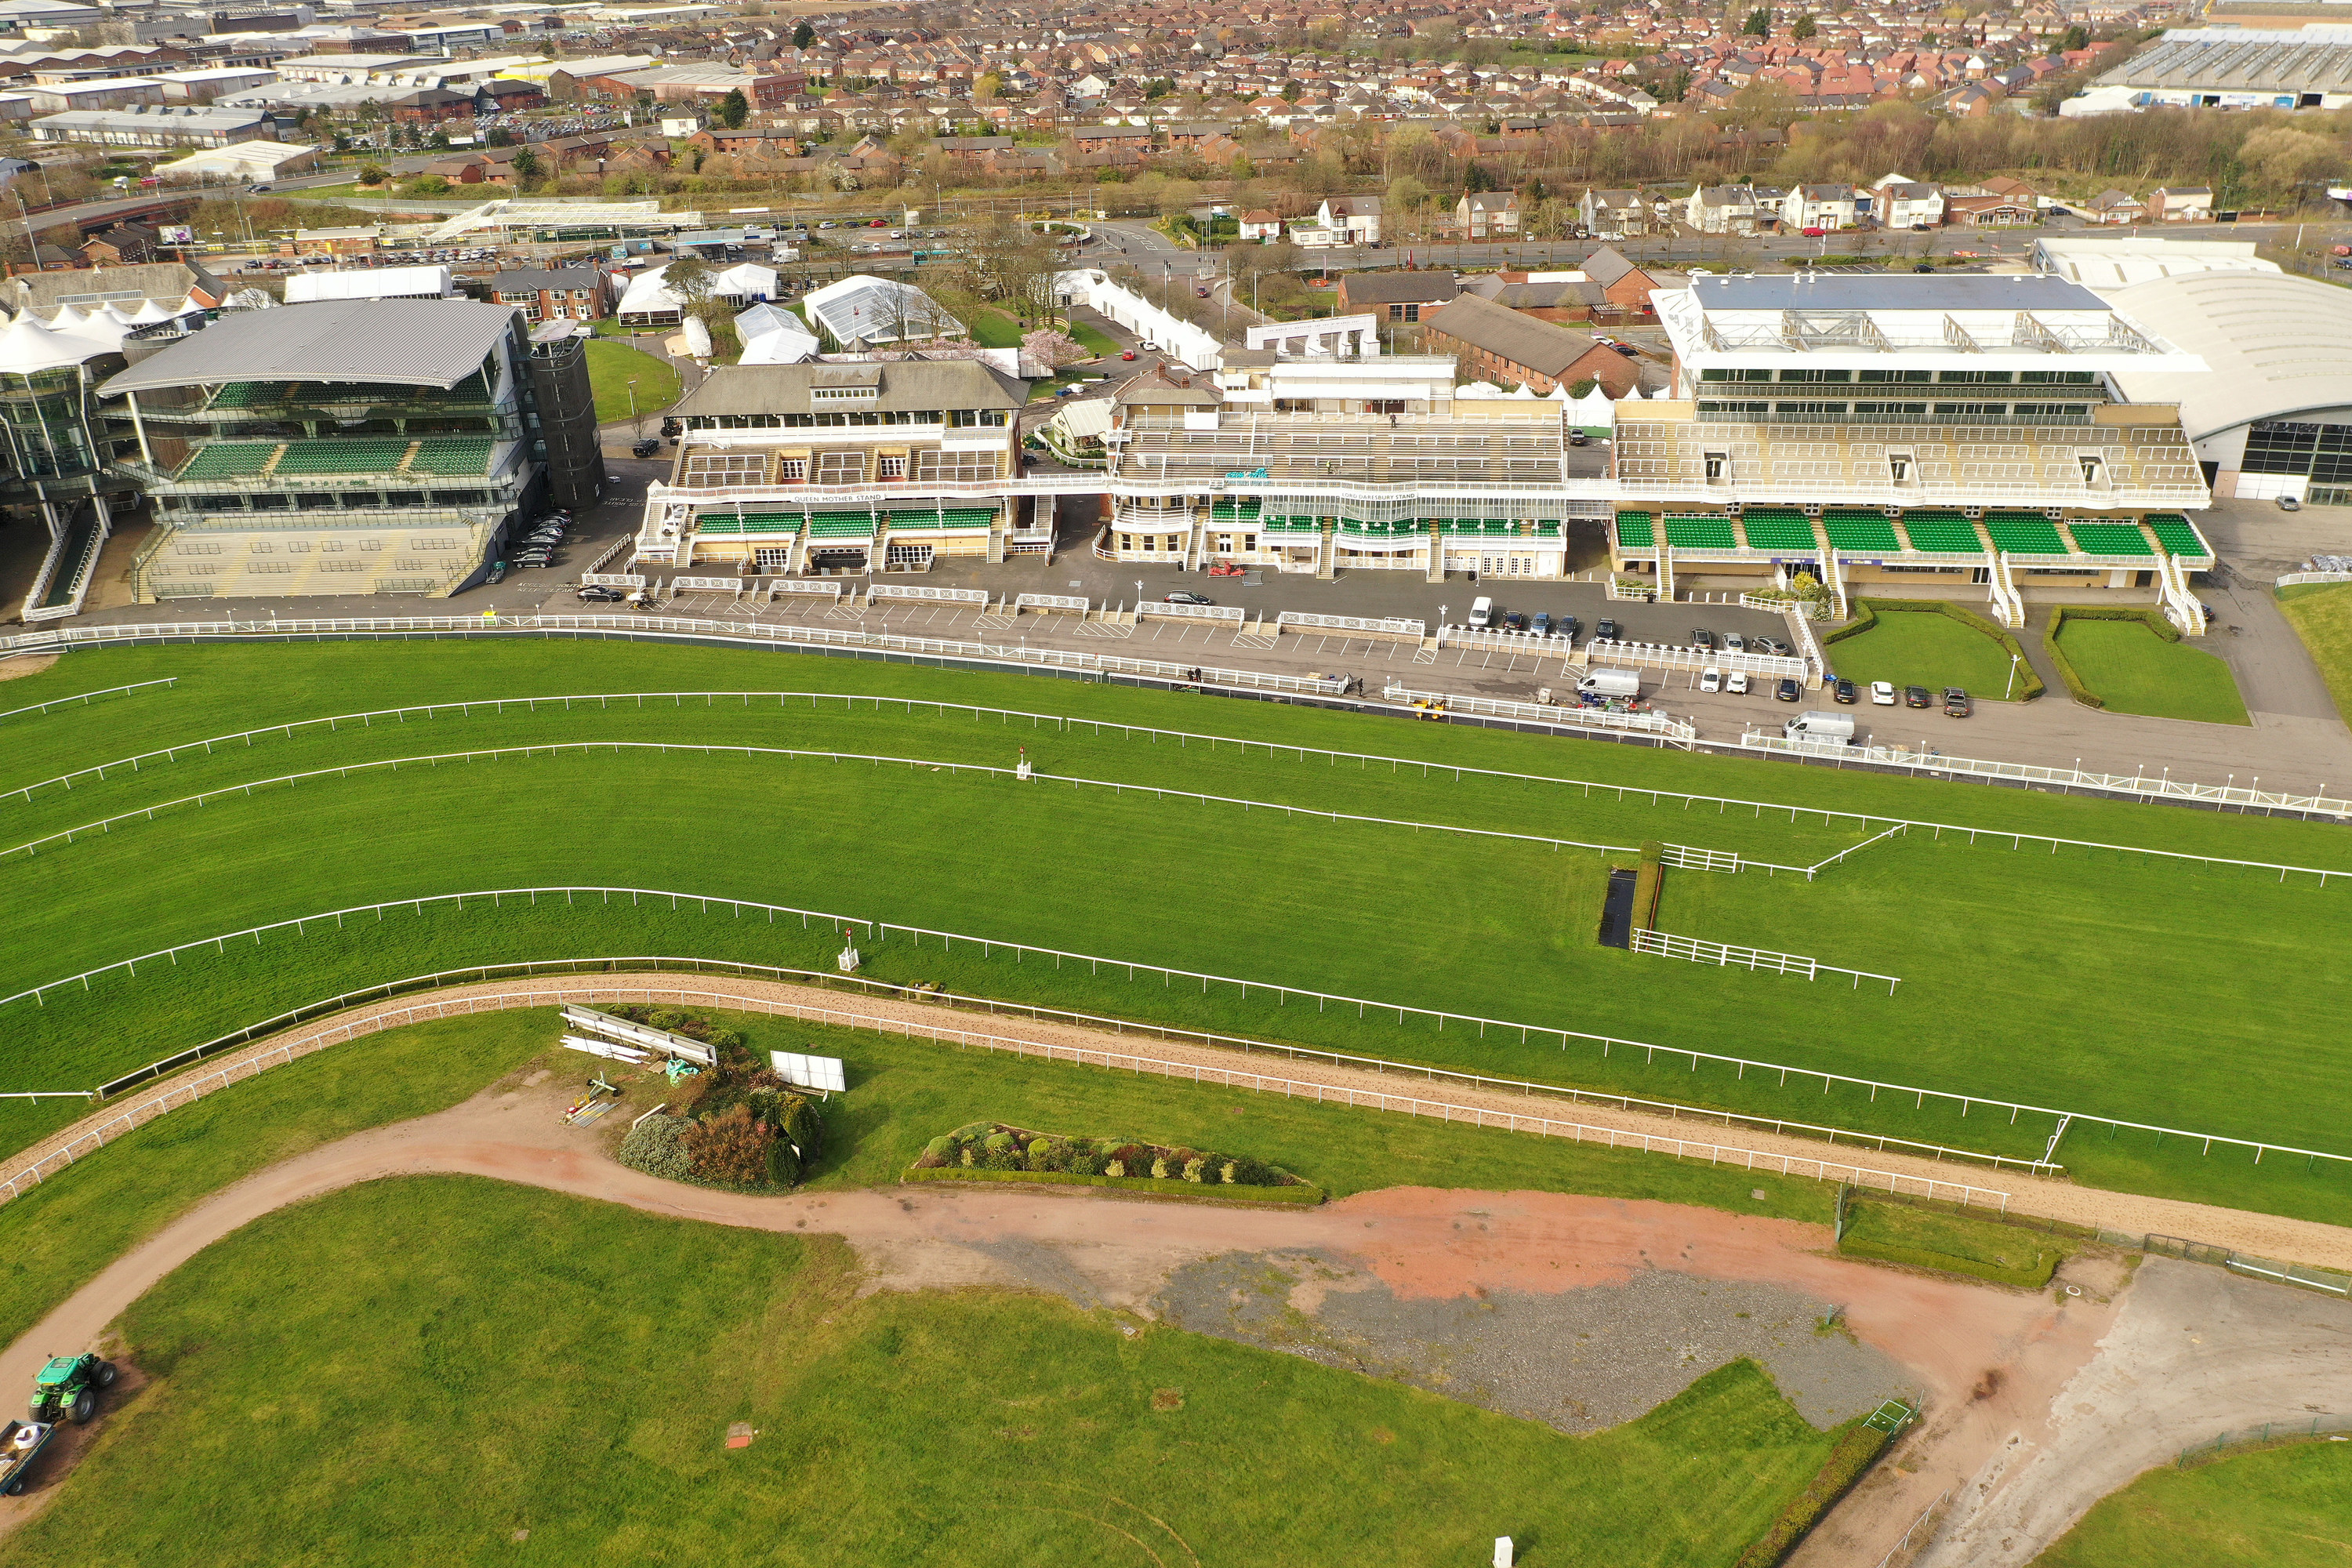 An aerial view of Aintree Racecourse after the annual Grand National horse racing event was cancelled on March 17.